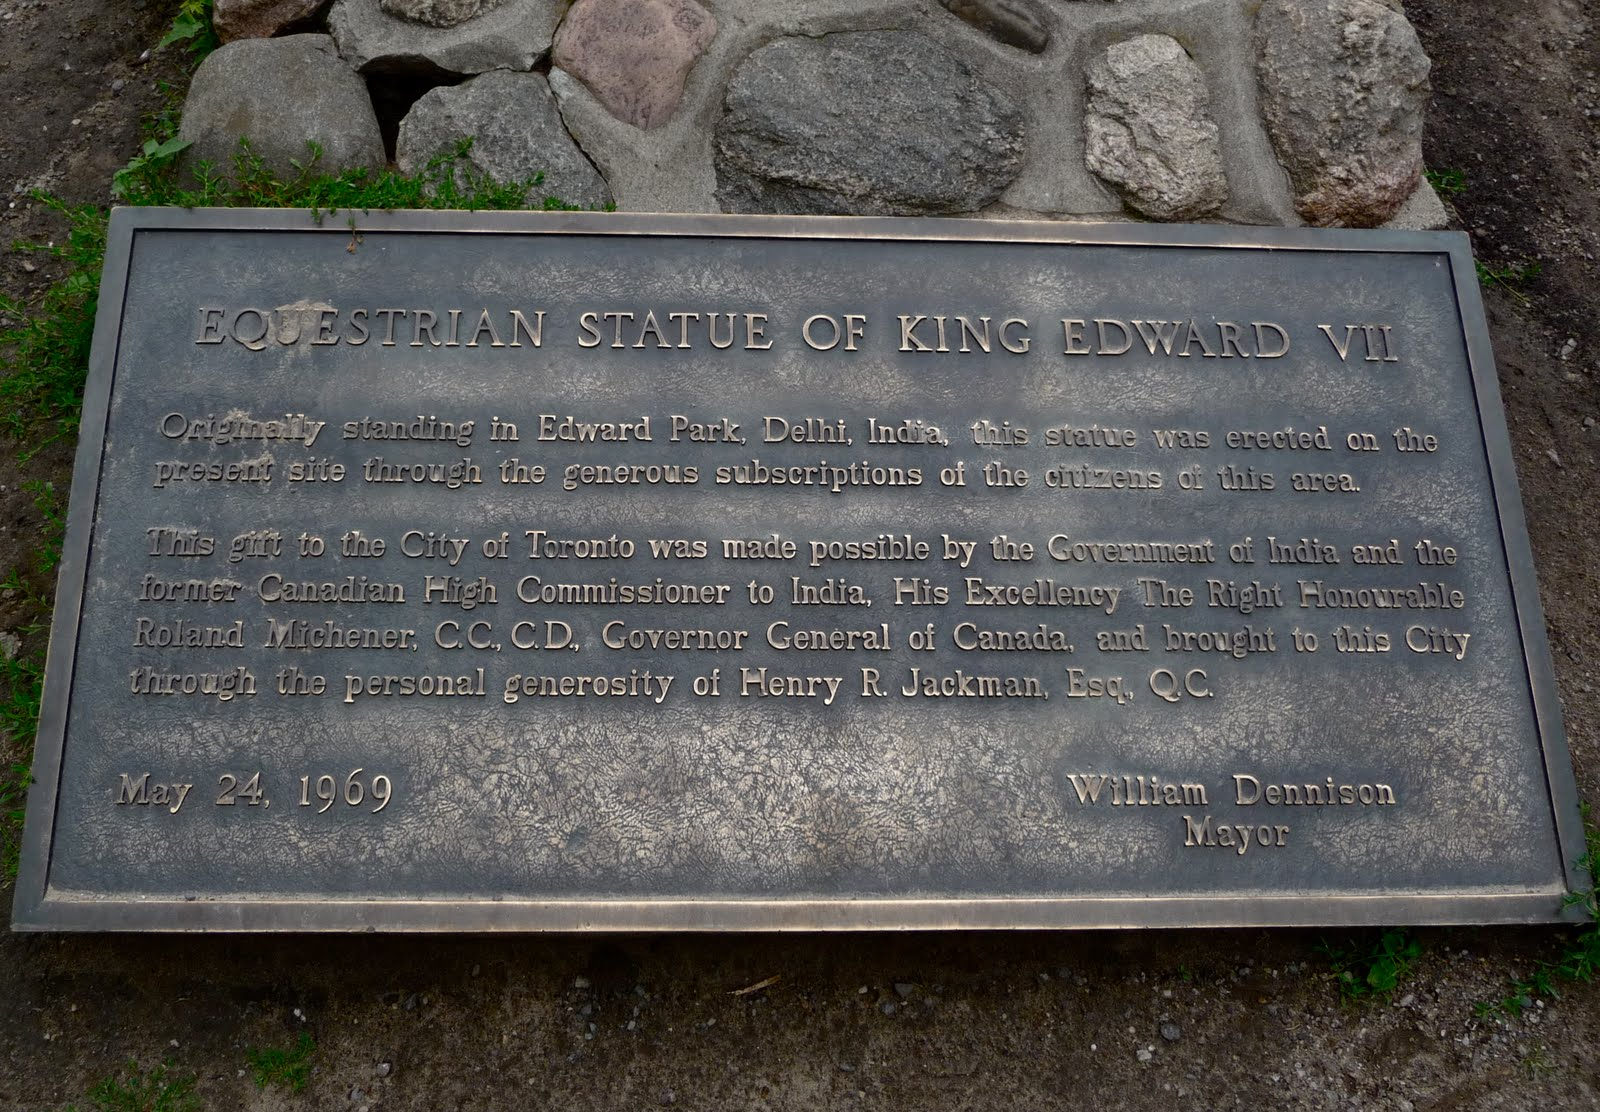 Plaque from Mayor Denninson announcing the move of the Equestrian Statue of King Edward VII from Dehli, India to Toronto, Canada in 1969. ( Notes From the Floating World )